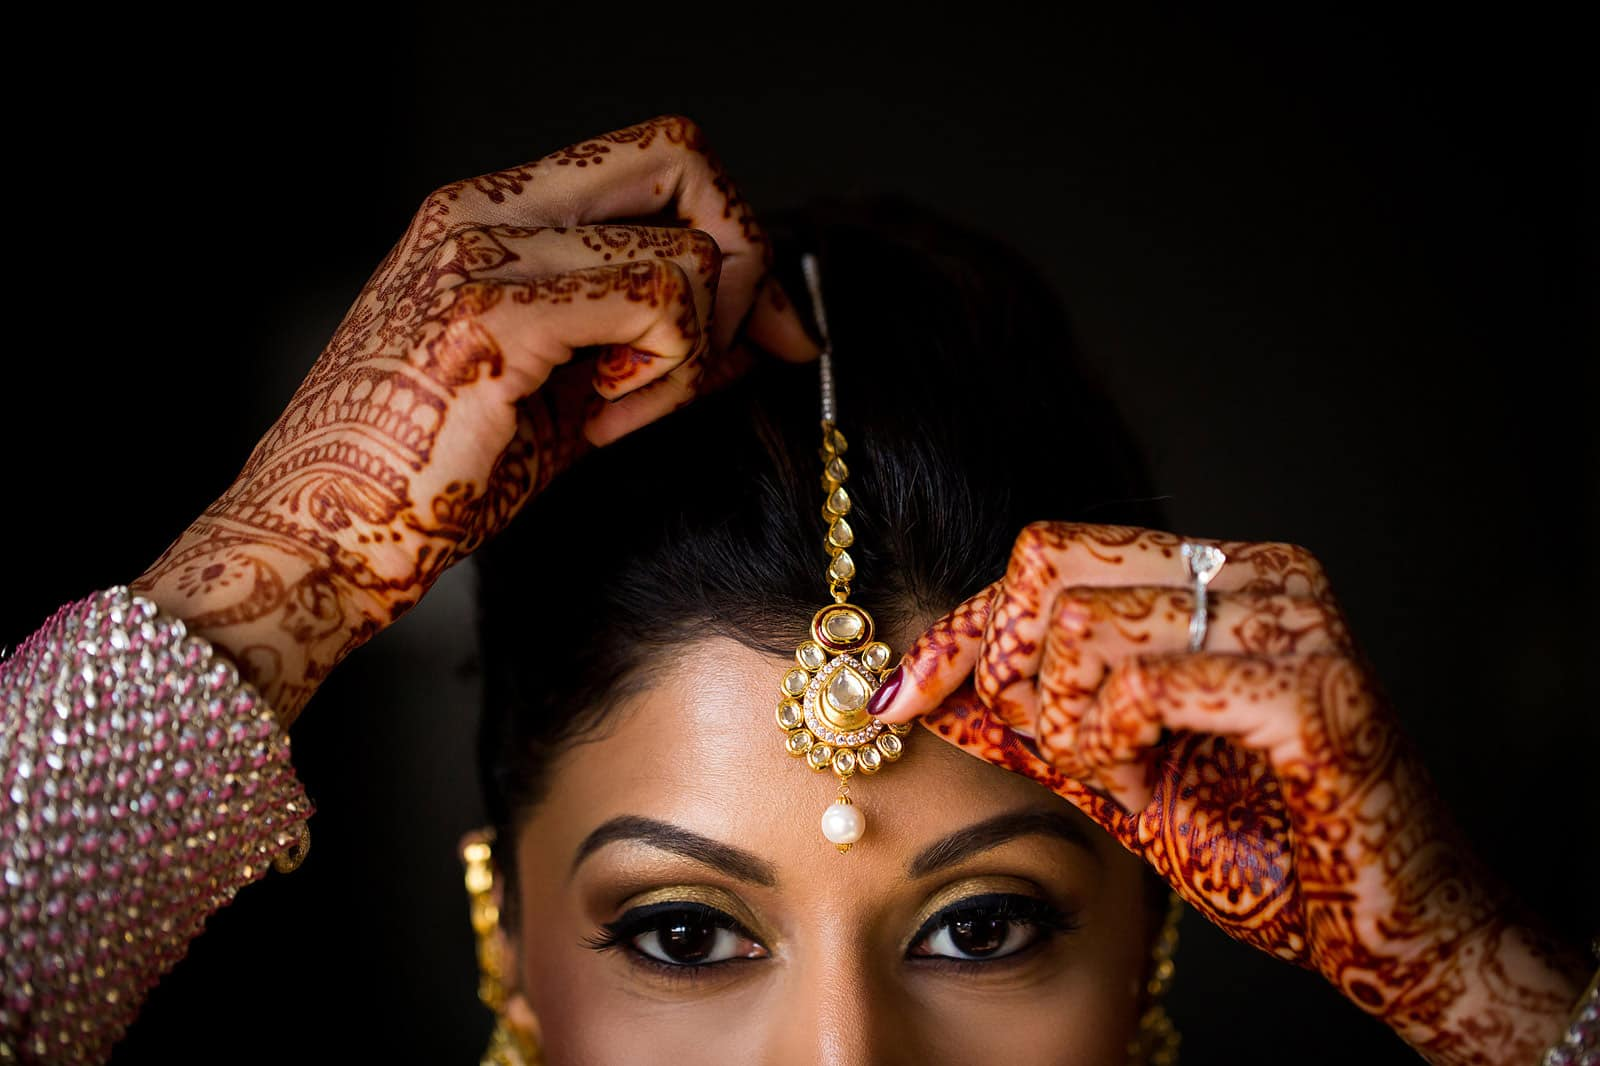 Indian Wedding Photographer St. Louis